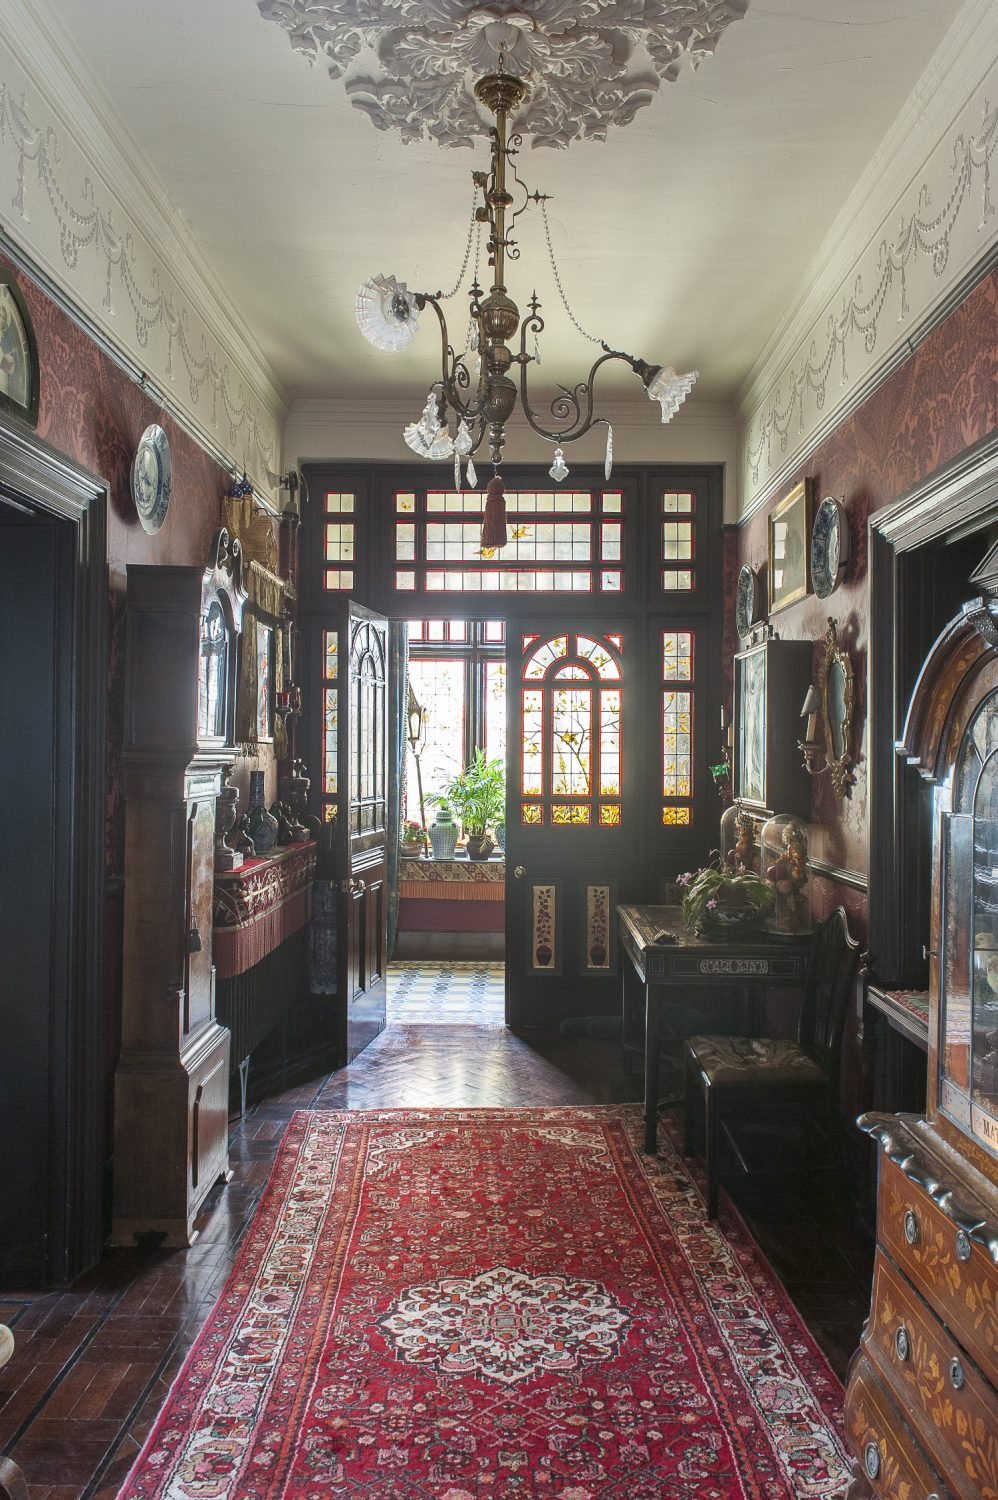 The hall is clearly from another era, every detail in perfect keeping with the late 19th century period of the house, from the rich red wallpaper, polished mahogany furniture and Holophane-shade chandelier, to the taxidermy specimens under glass domes